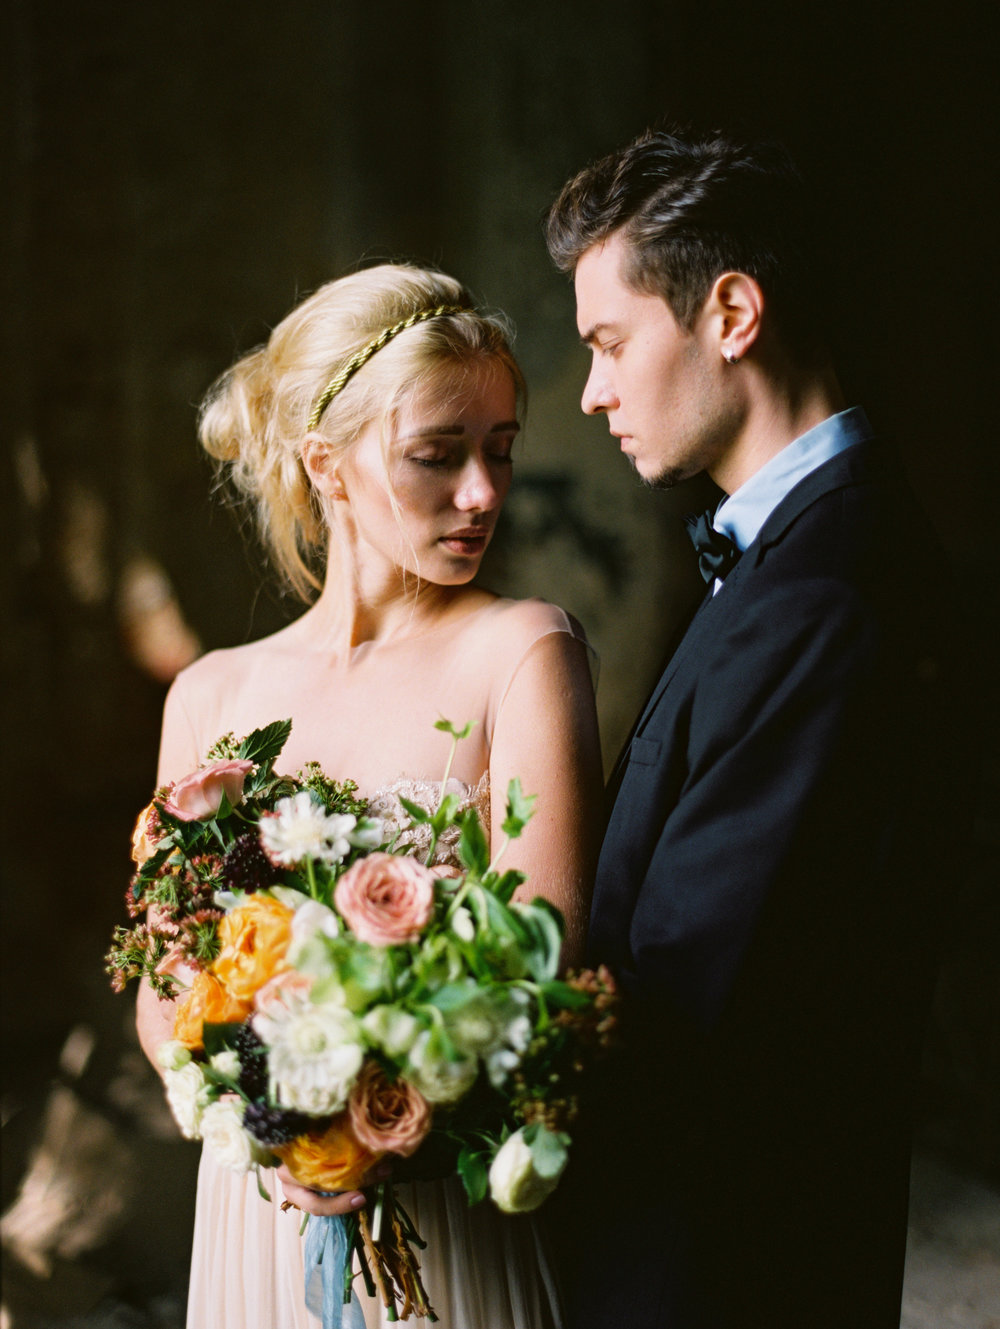 wedding-styled-shoot-russia-inspiration-elena-pavlova-photography-metamorphoses-orpheus-eurydice (35).jpg